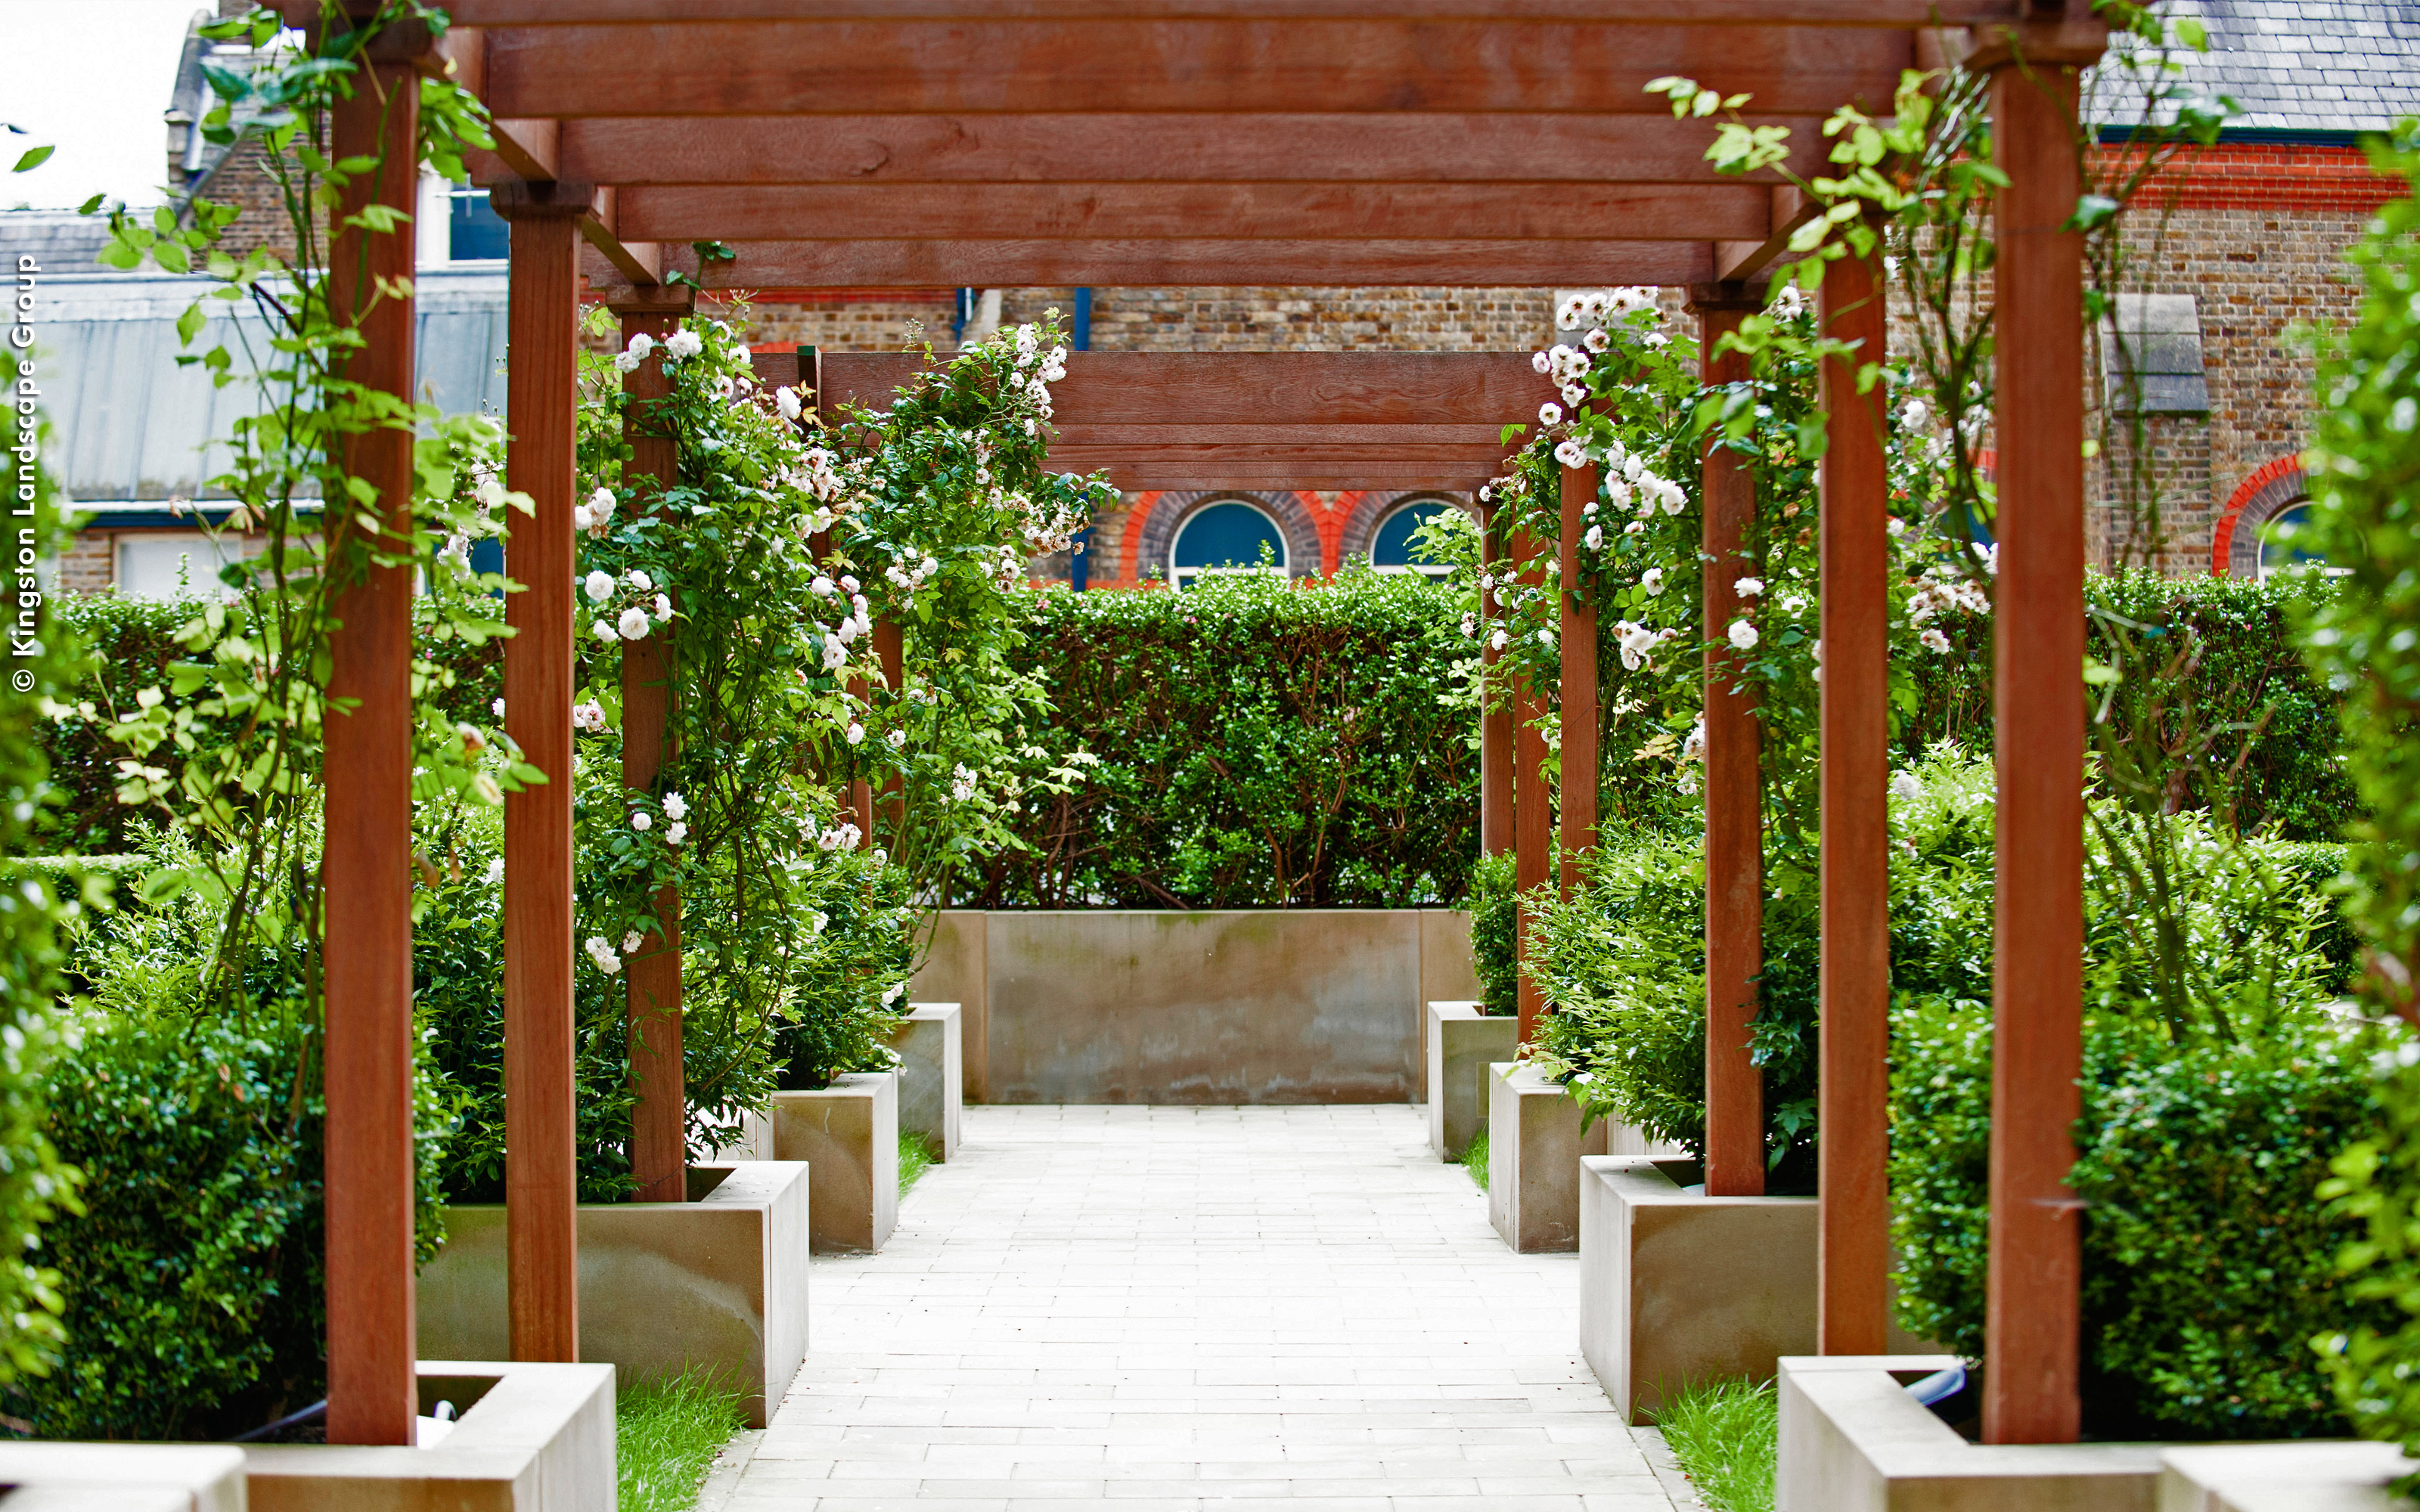 A wooden pergola with creepers and planters